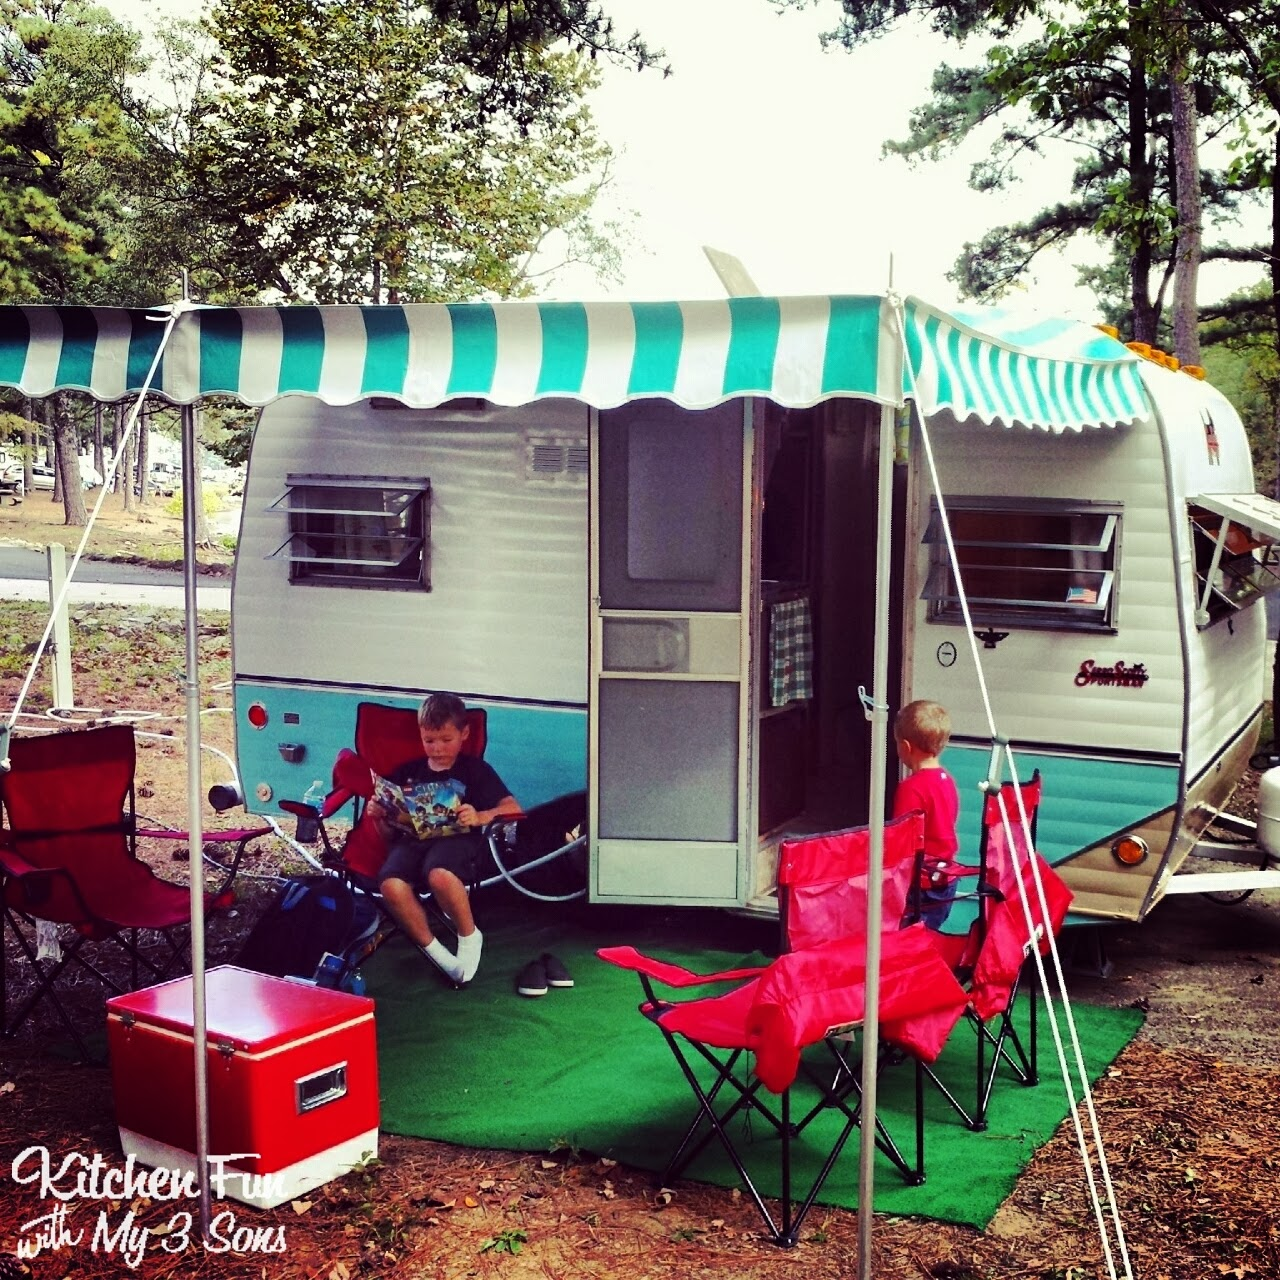 Fun Camping Ideas For Kids Camping Recipes And Fun: Brownie Bear Claw Camping Cookies & Other Camping Food